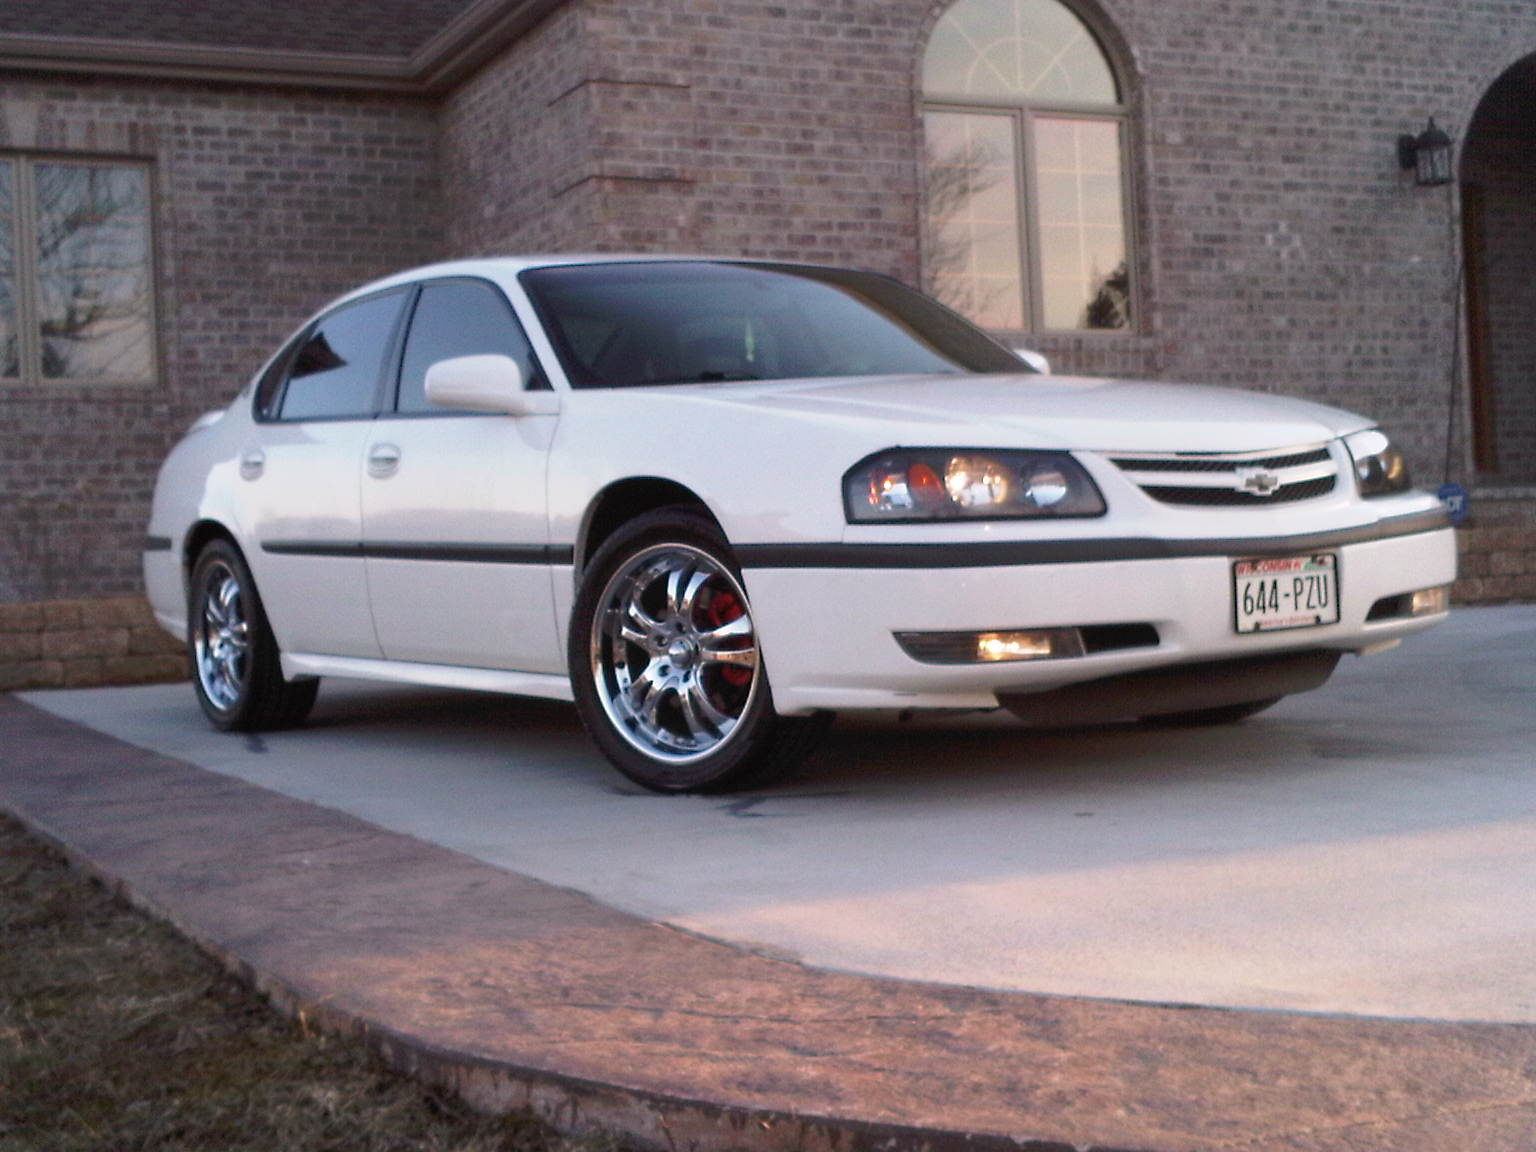 All Types 2004 impala ss indy edition : What grill for 04 impala - Chevy Impala Forums